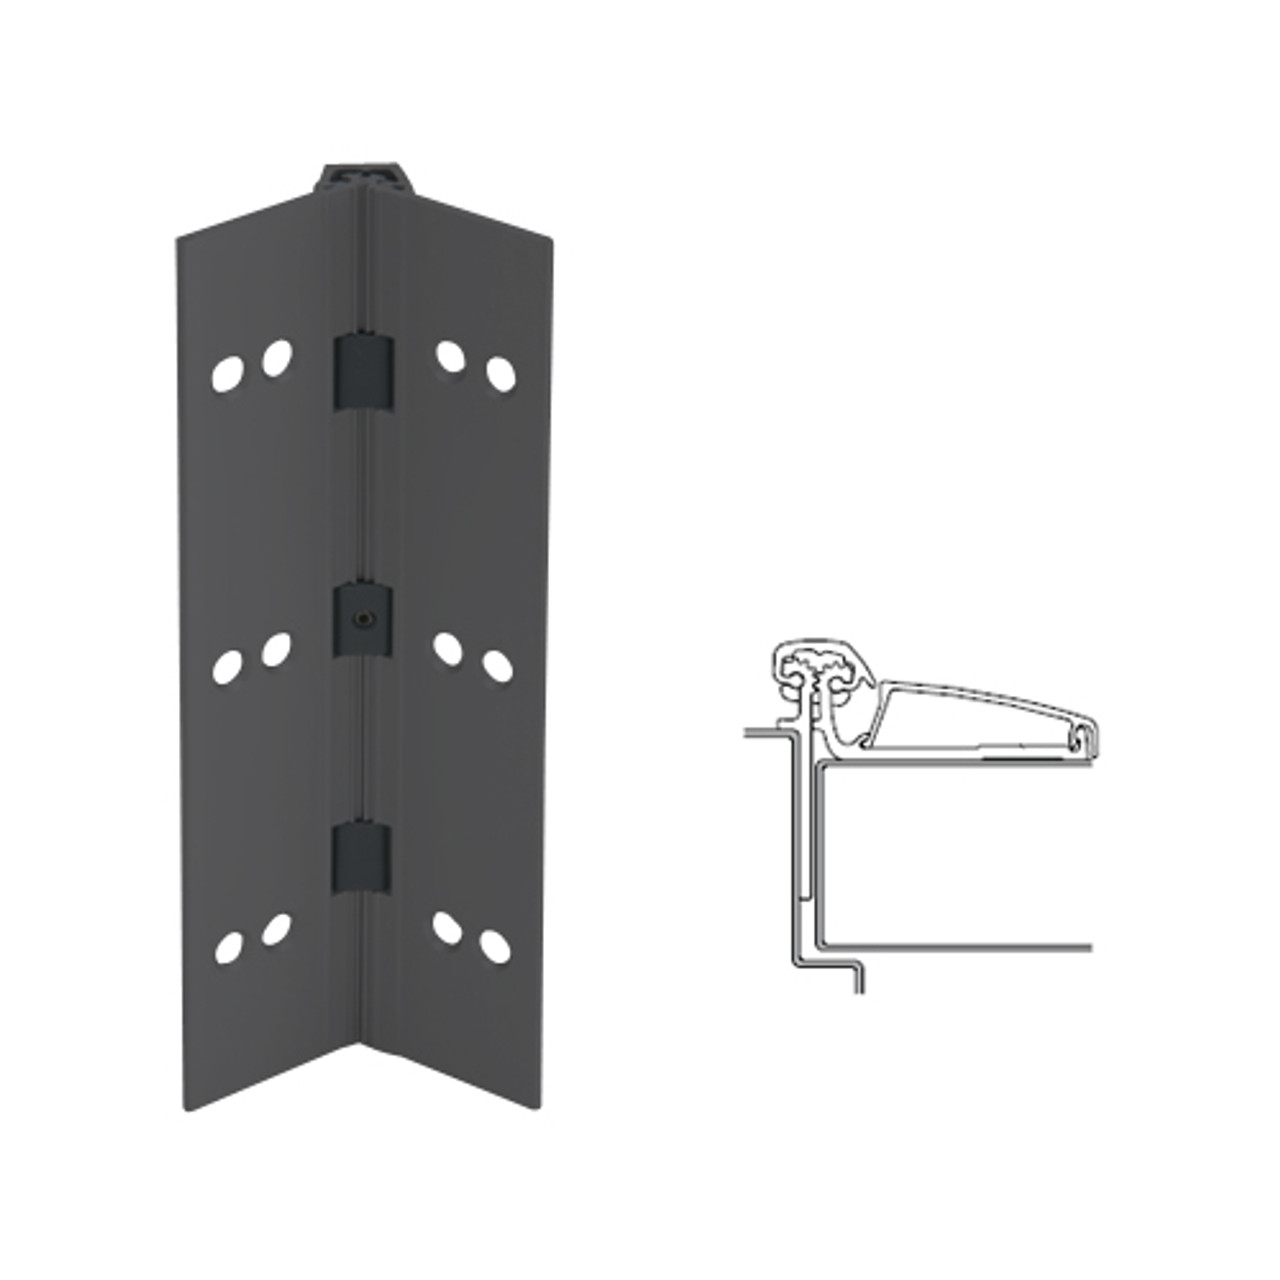 045XY-315AN-120 IVES Adjustable Half Surface Continuous Geared Hinges in Anodized Black